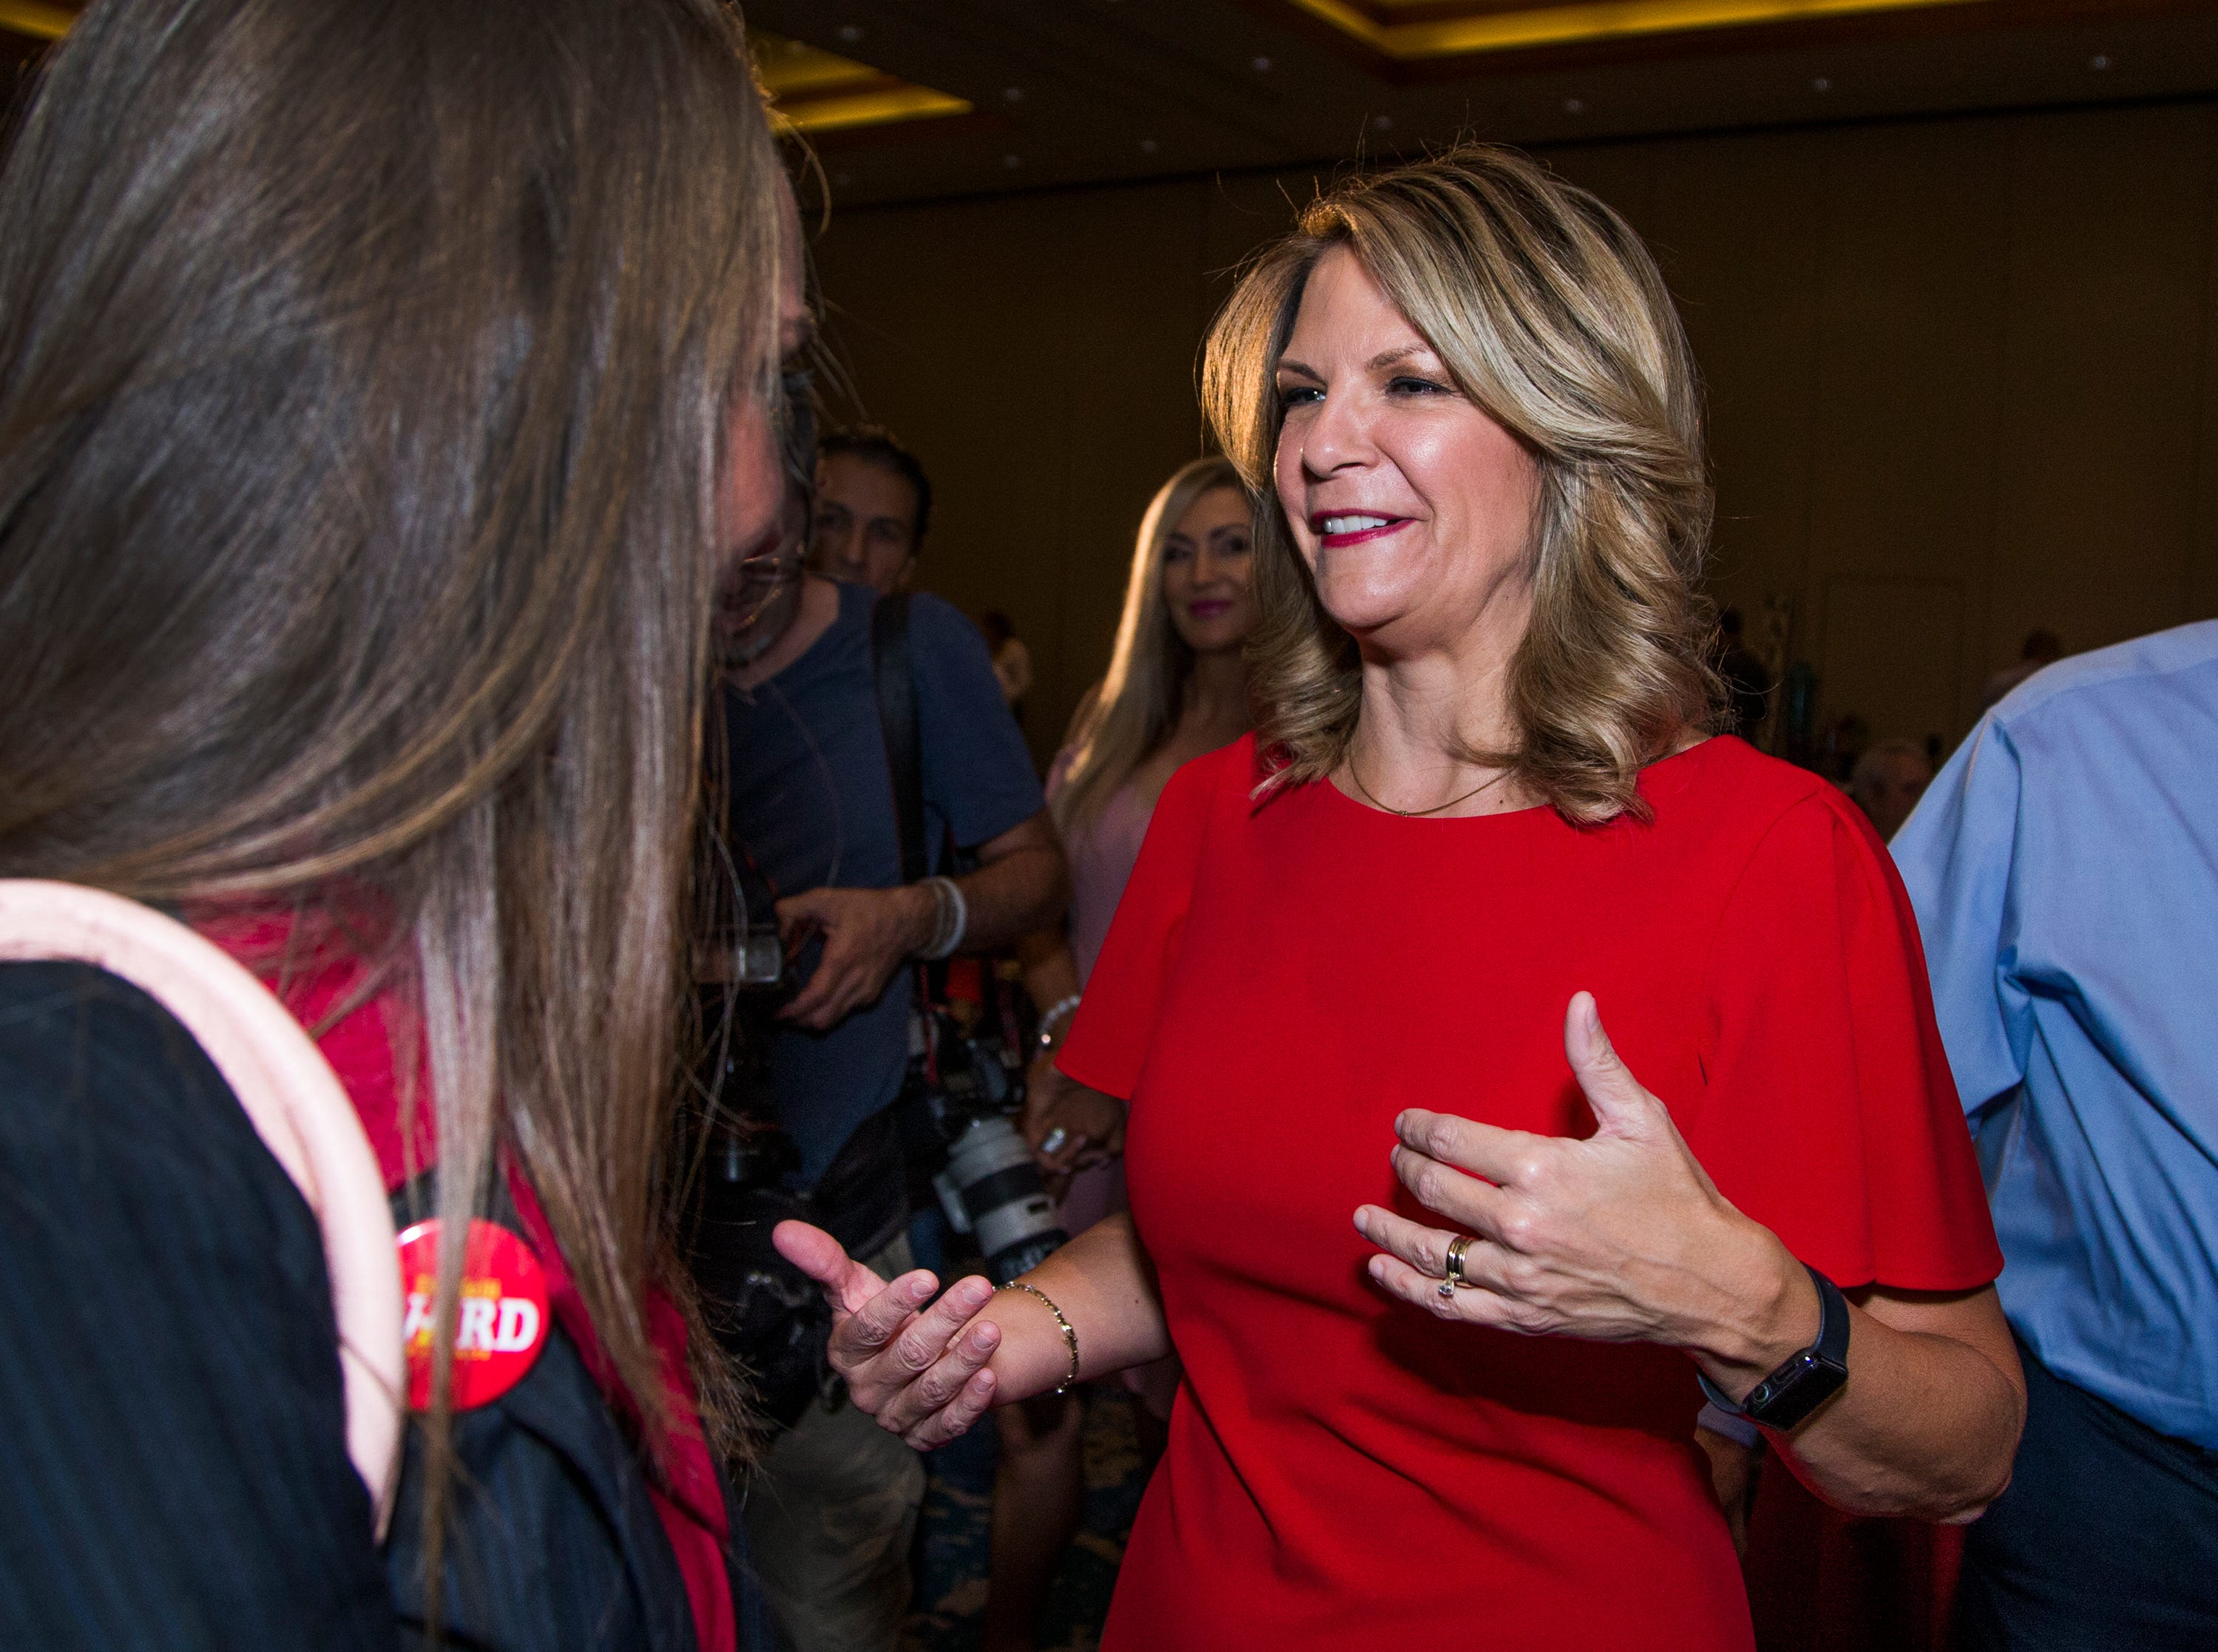 Kelli Ward (right) greets supporter Courtney Kinneard, 23, of Mesa, during a primary election night party at Embassy Suites Scottsdale, Aug. 28, 2018.